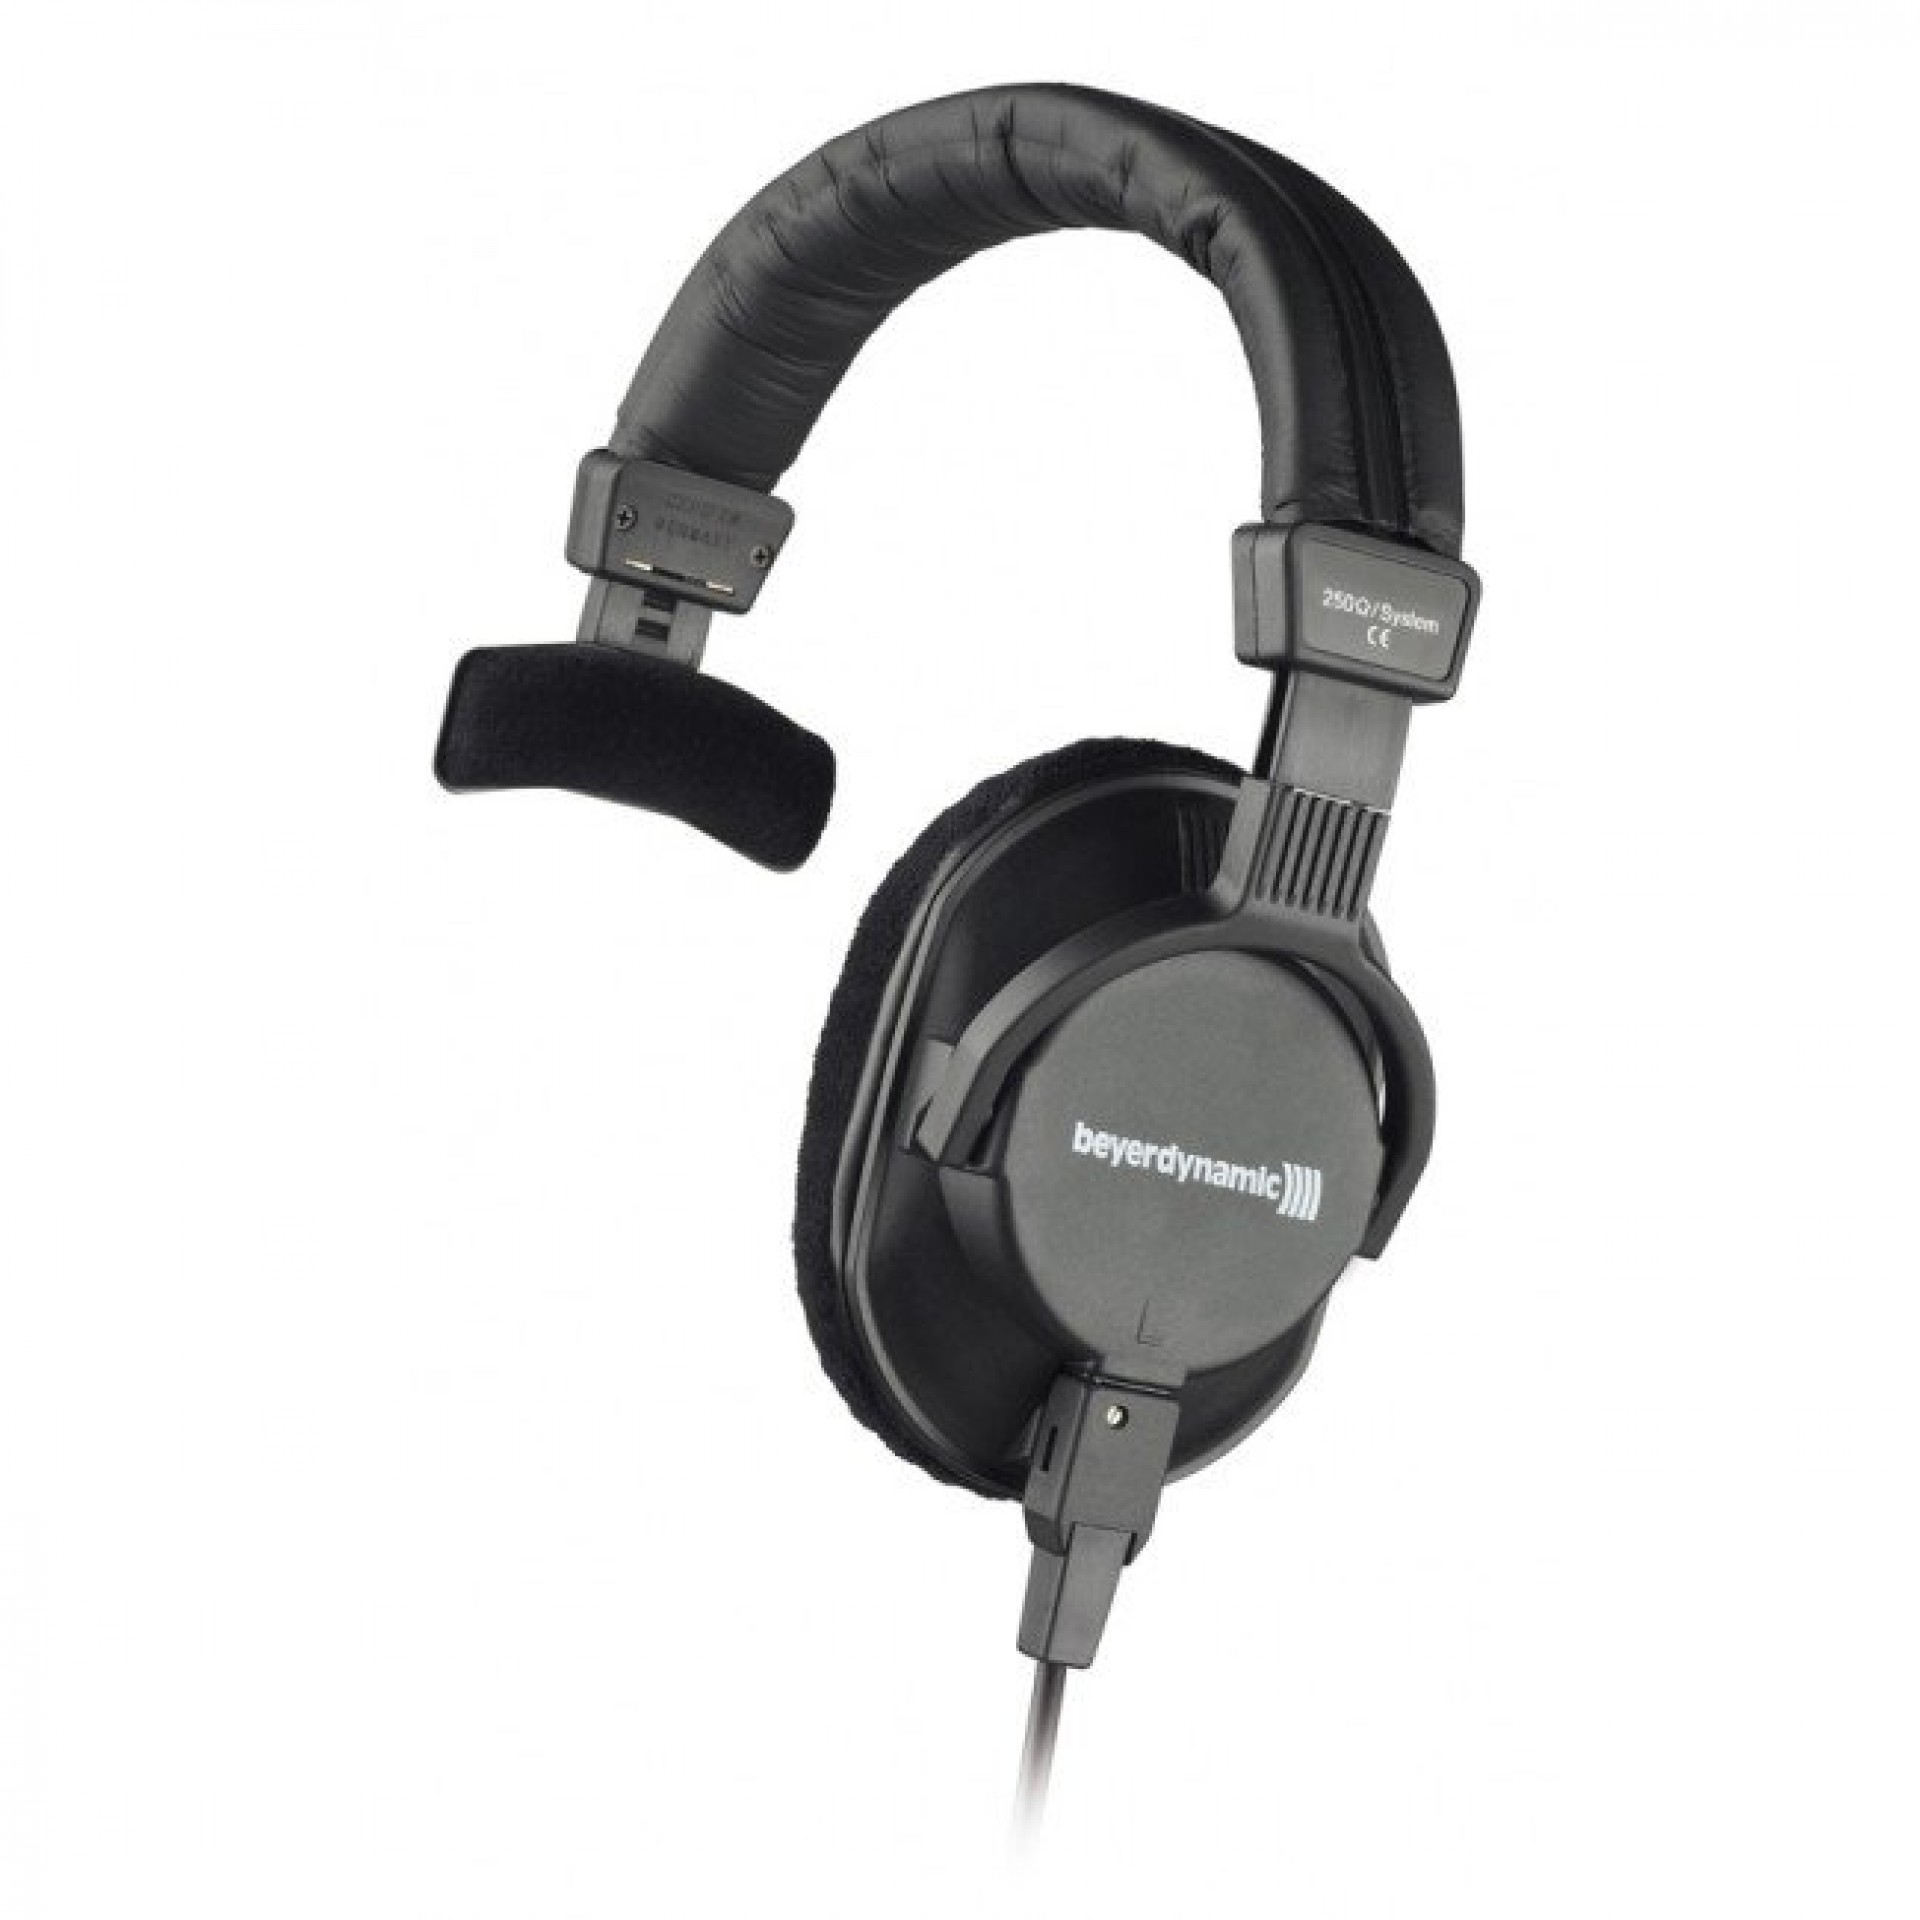 BEYERDYNAMIC DT 252 80 ohm